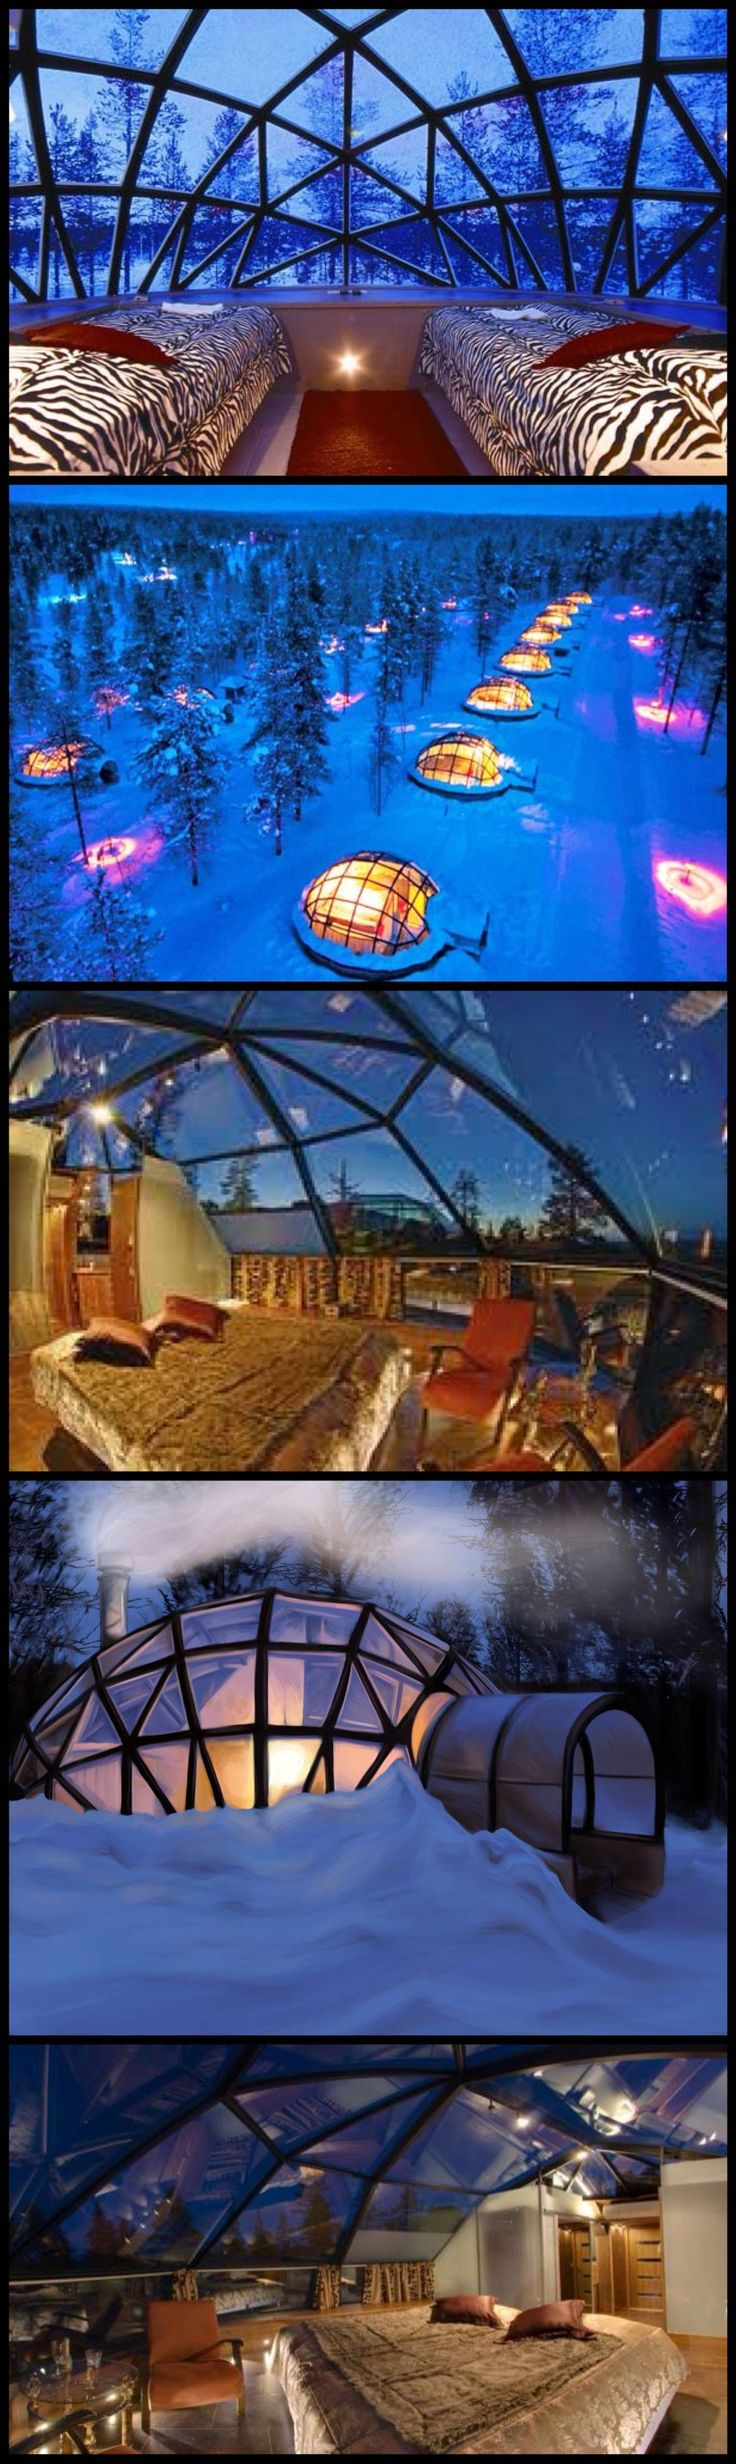 Best way to see the Northern Lights... if only they had this in Iceland. Hotel Kakslauttanen Igloo Village, Finland #britairtrans #ice #hotel